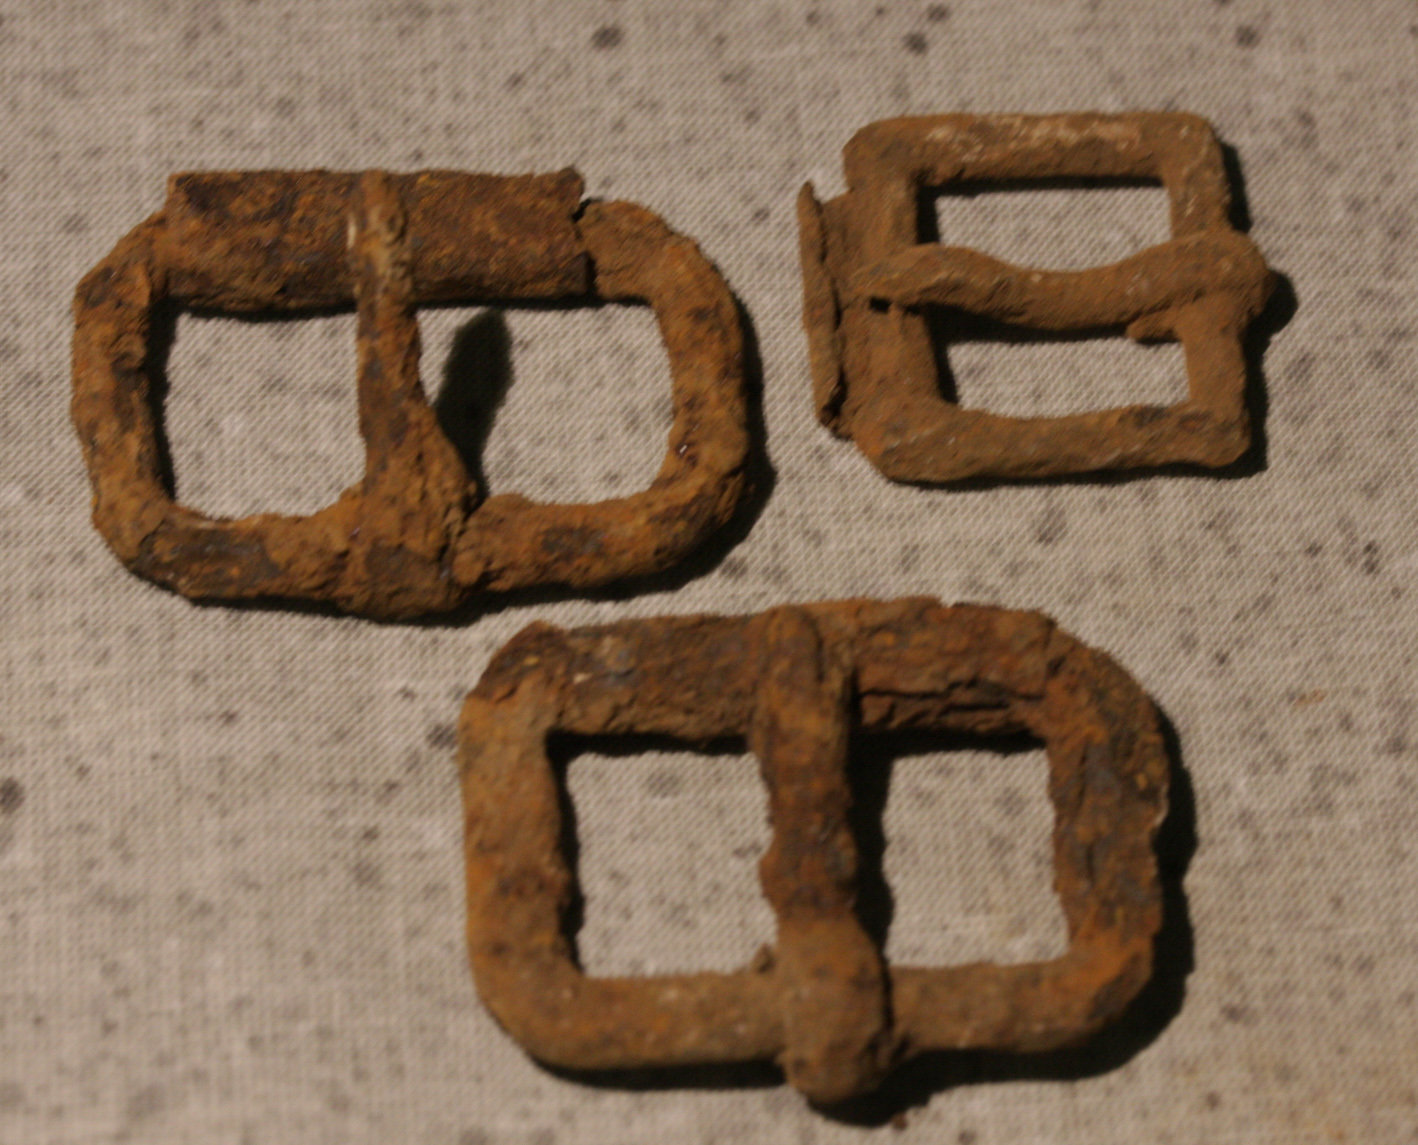 JUST ADDED ON 11/15 - CULPEPER, VIRGINIA - Three Roller Buckles WB-CLP08